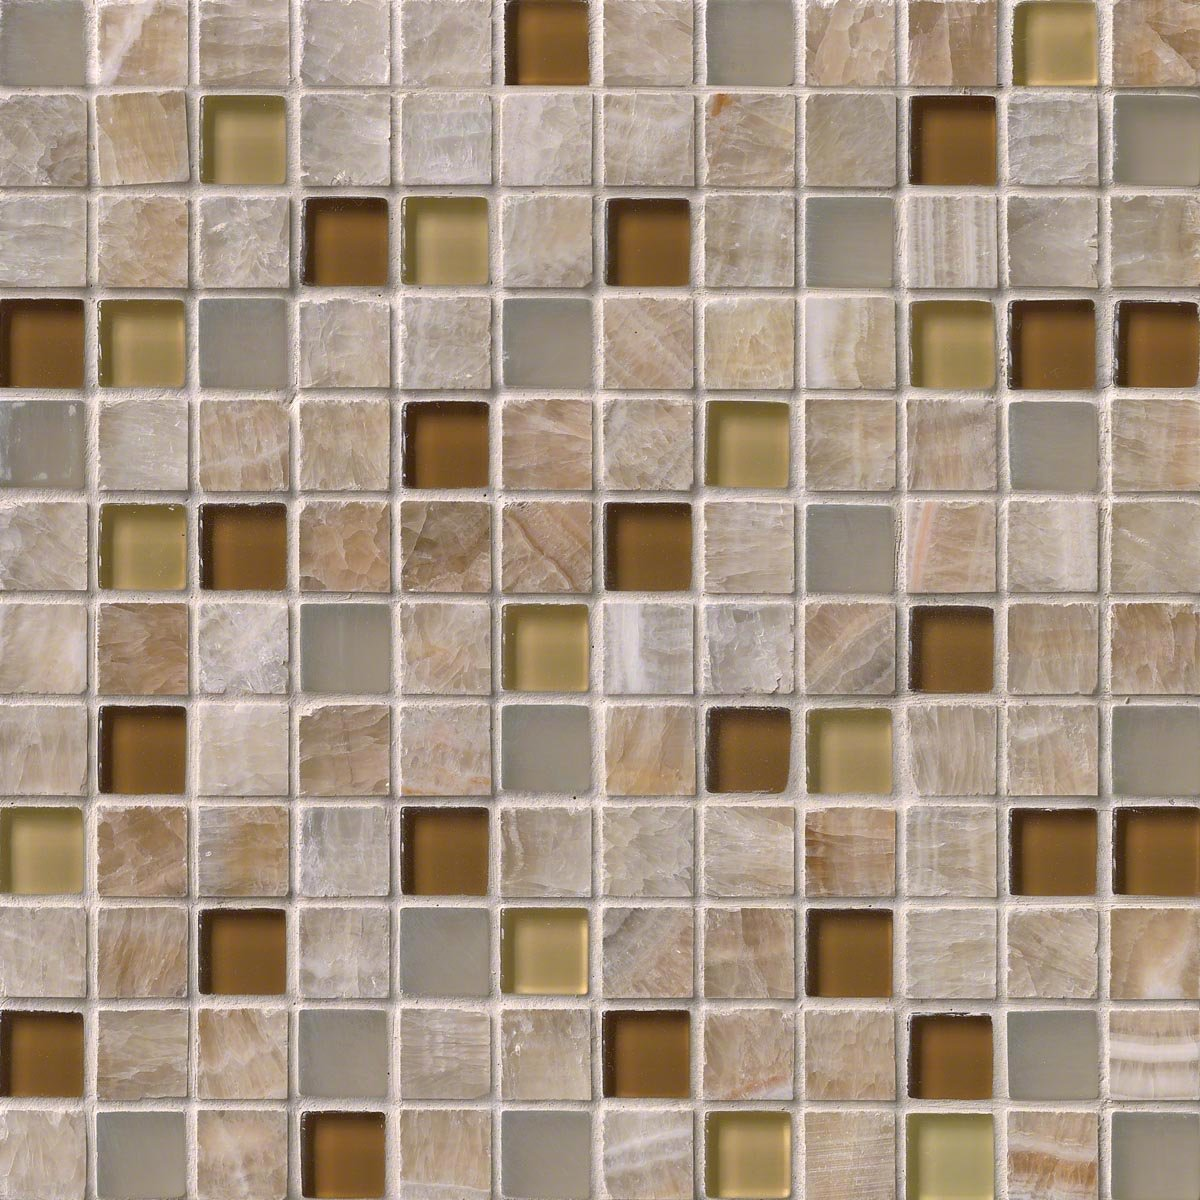 M S International Honey Onyx Caramel 12 In. X 12 In. X 8mm Glass Stone Mesh-Mounted Mosaic Tile, (10 sq. ft., 10 pieces per case)